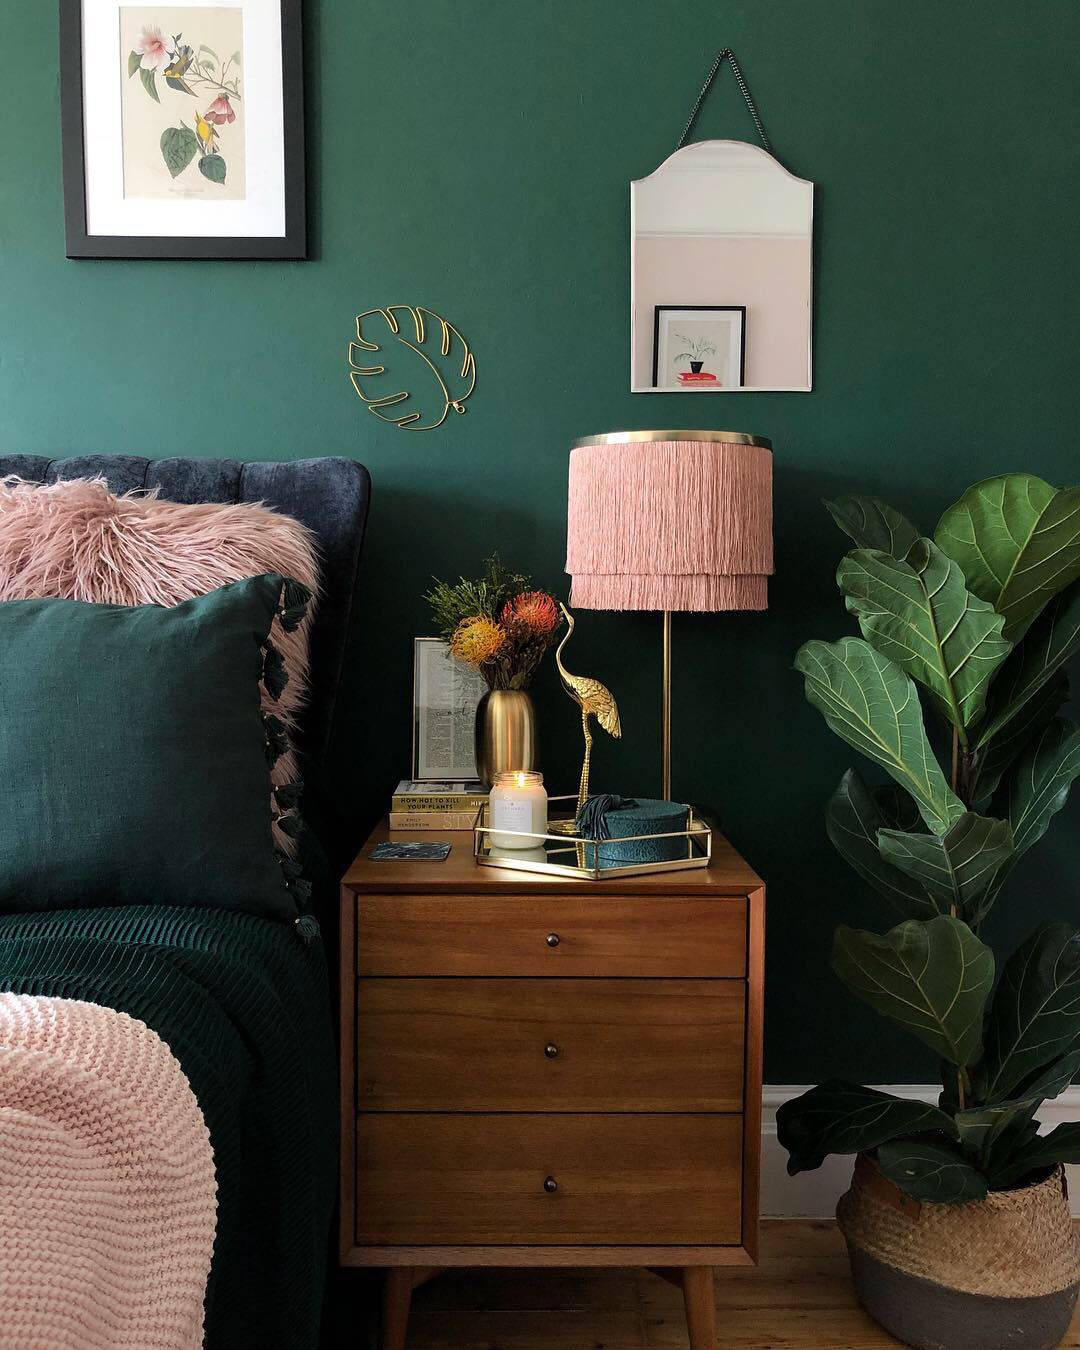 Dark Green And Blush Pink Decor In Bedroom With Mid Century Twist